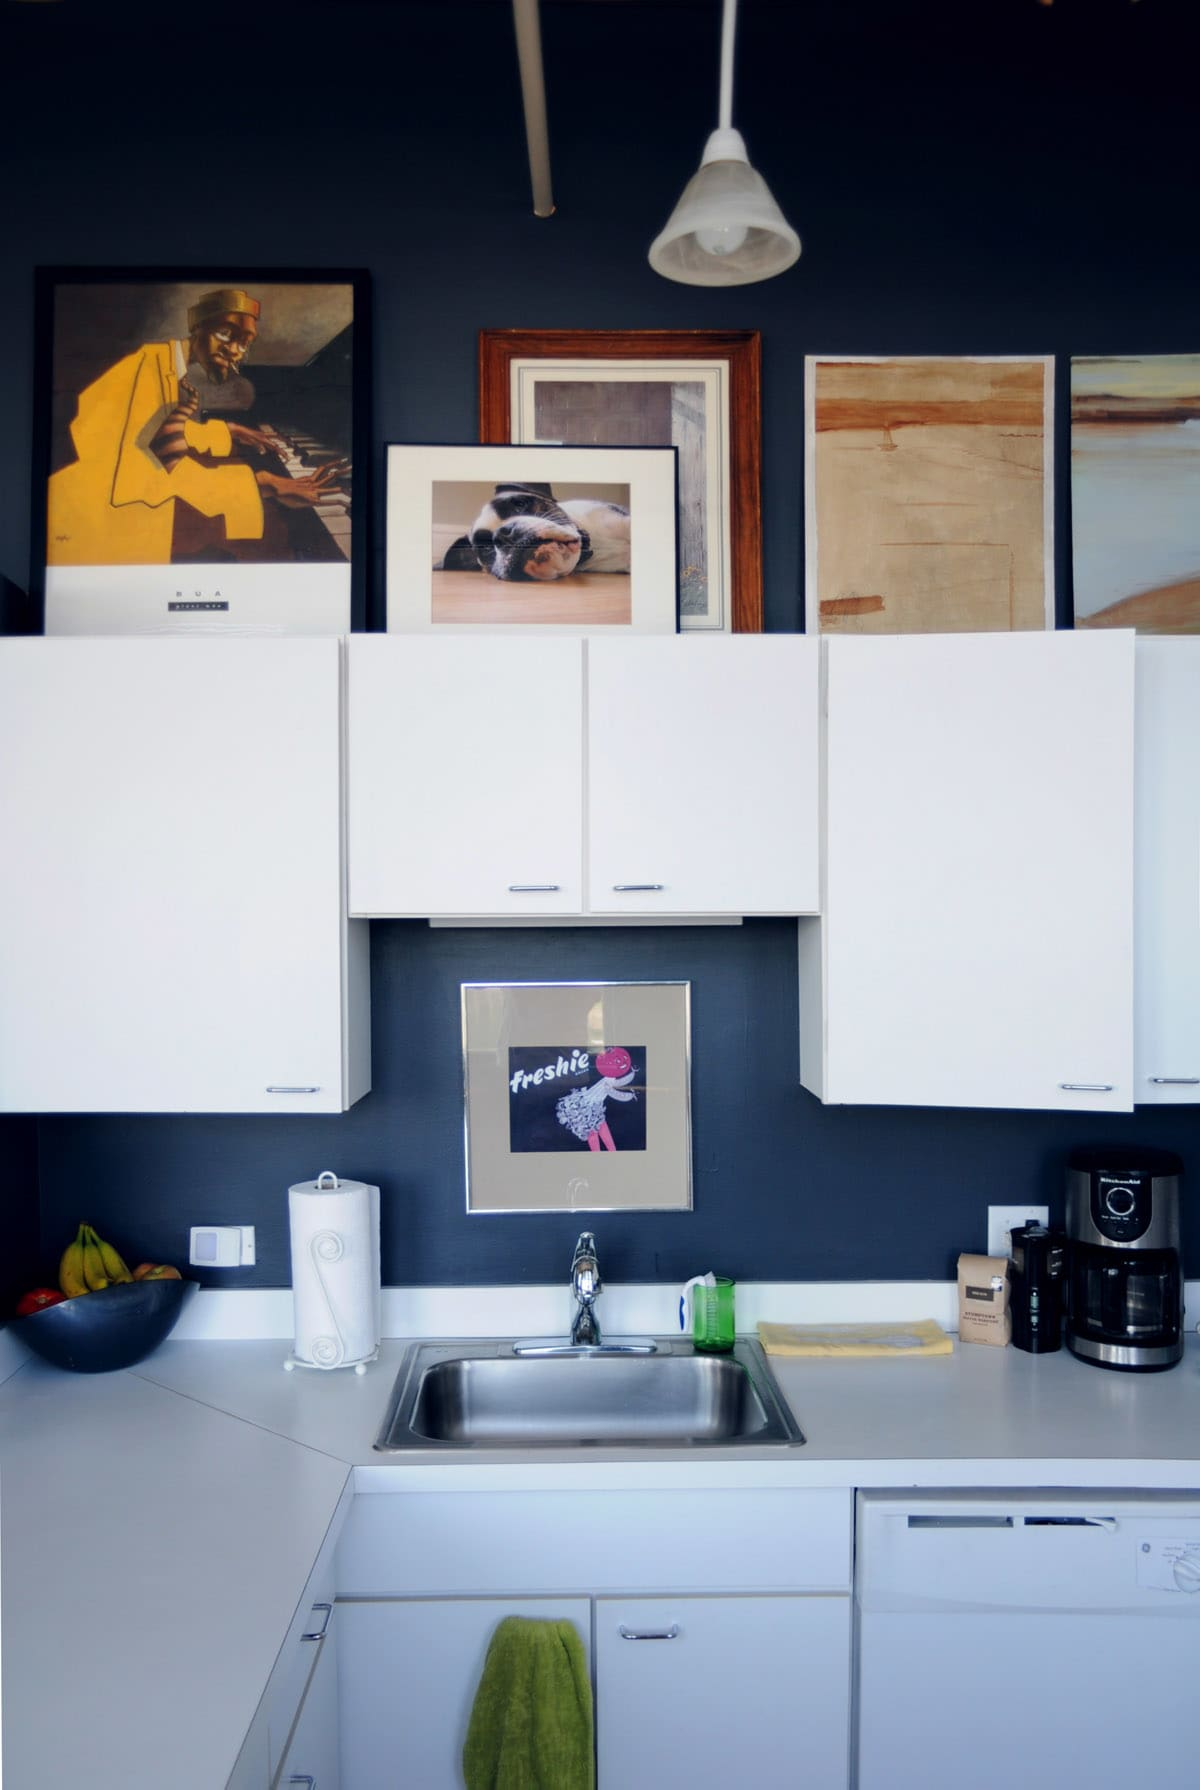 7 Things to Do with That Awkward Space Above the Cabinets ... on kitchen cabinet handles, kitchen counter edge profiles, kitchen counter televisions, kitchen counter spacers, kitchen counter walls, kitchen counter cleaning, kitchen counter bookcases, kitchen counter chandeliers, kitchen counter vinyl, kitchen counter furniture, kitchen counter shutters, kitchen cabinet styles, kitchen counter drawer, kitchen counter accents, kitchen counter edge styles, kitchen counter backsplash, kitchen countertops, kitchen counter concrete, kitchen counter slabs, kitchen counter doors,